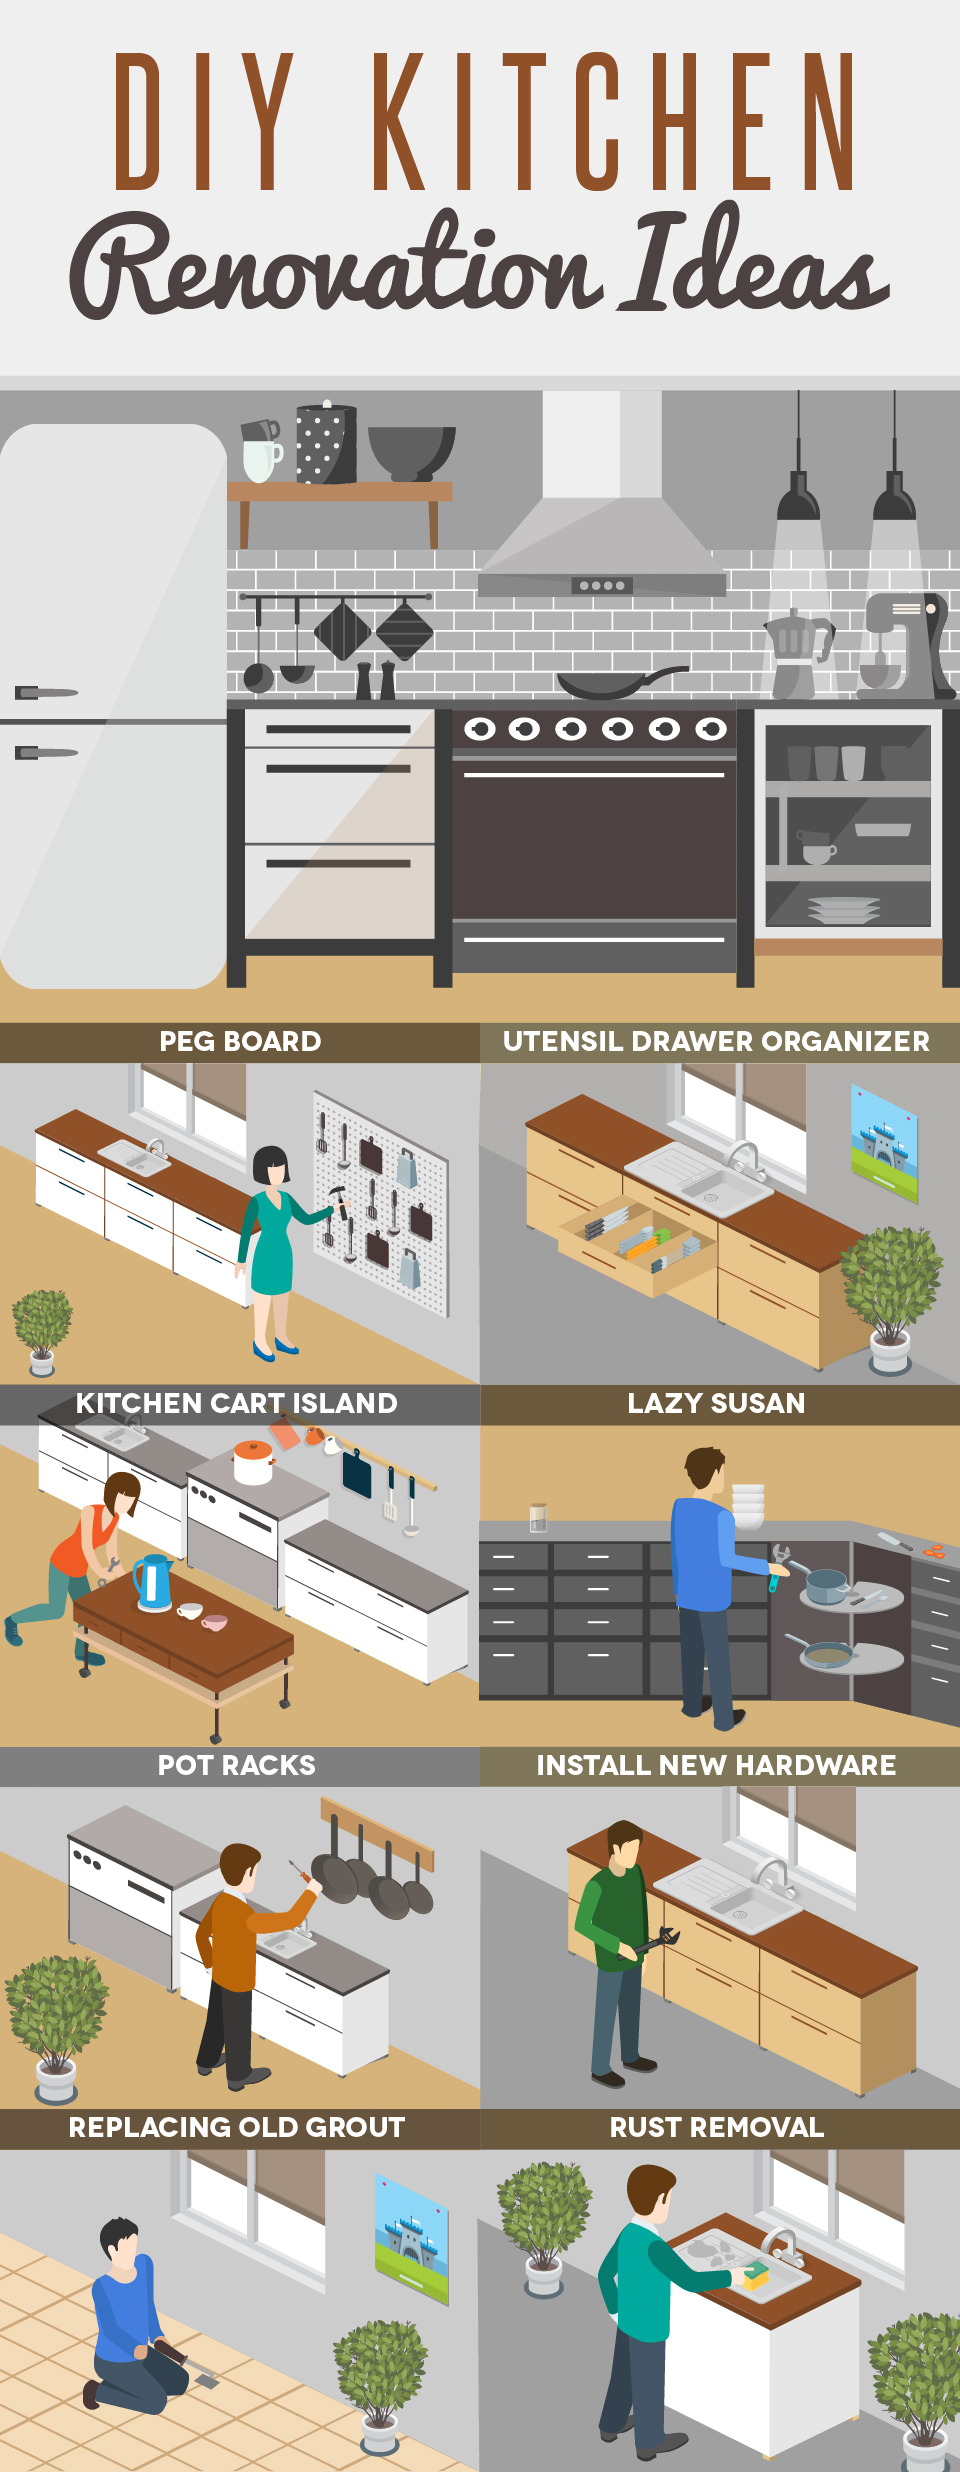 DIY Kitchen Renovation Ideas